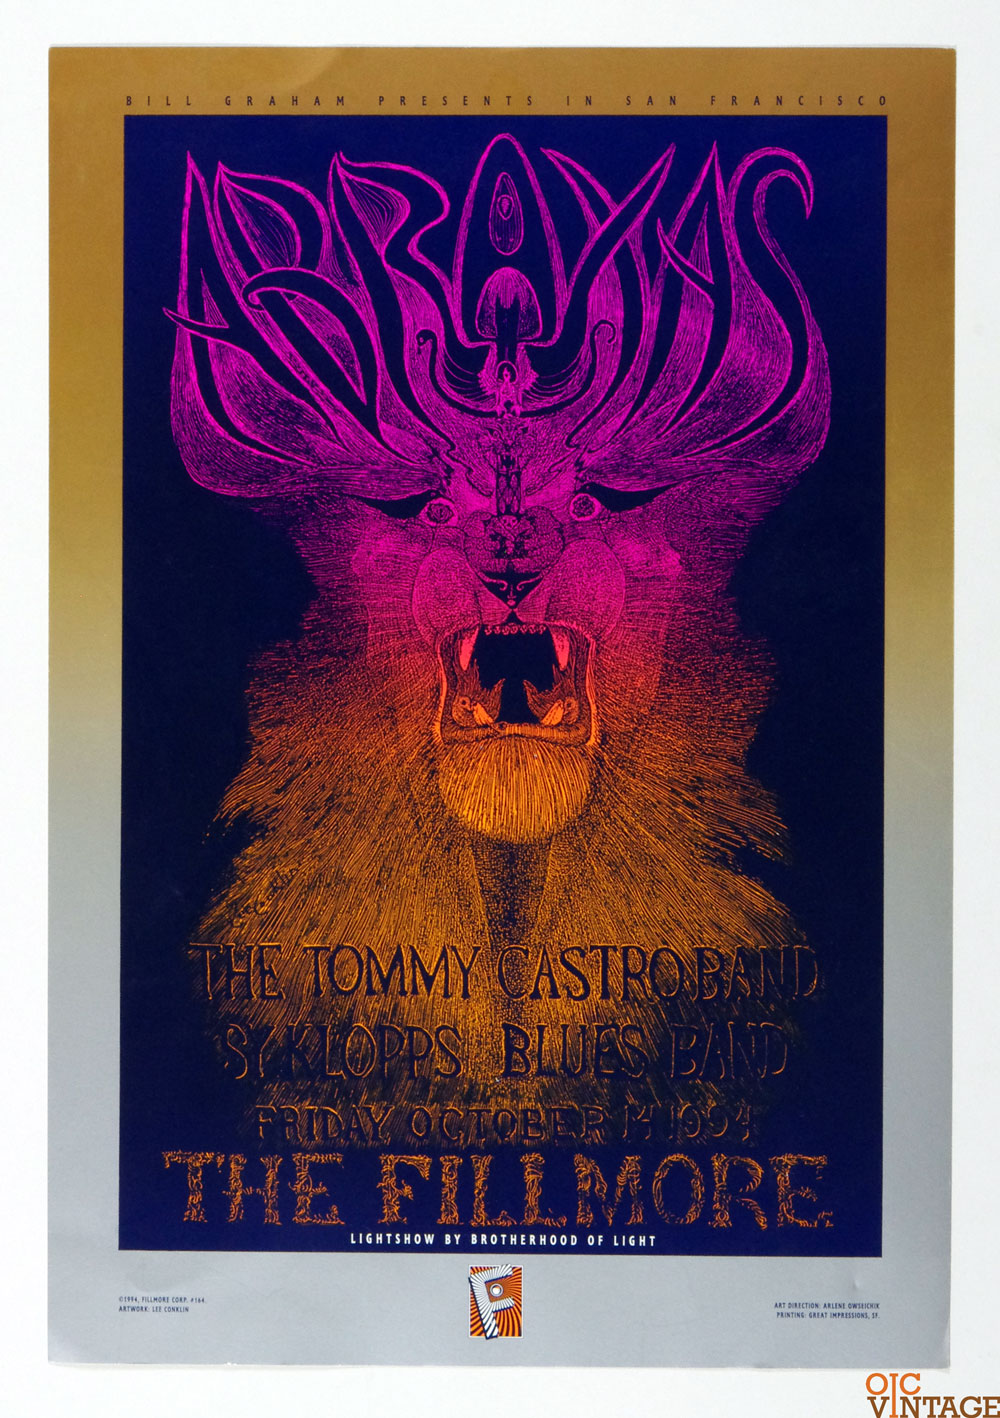 ABRAXAS The Tommy Castro Band Poster 1994 Oct 14 New Fillmore